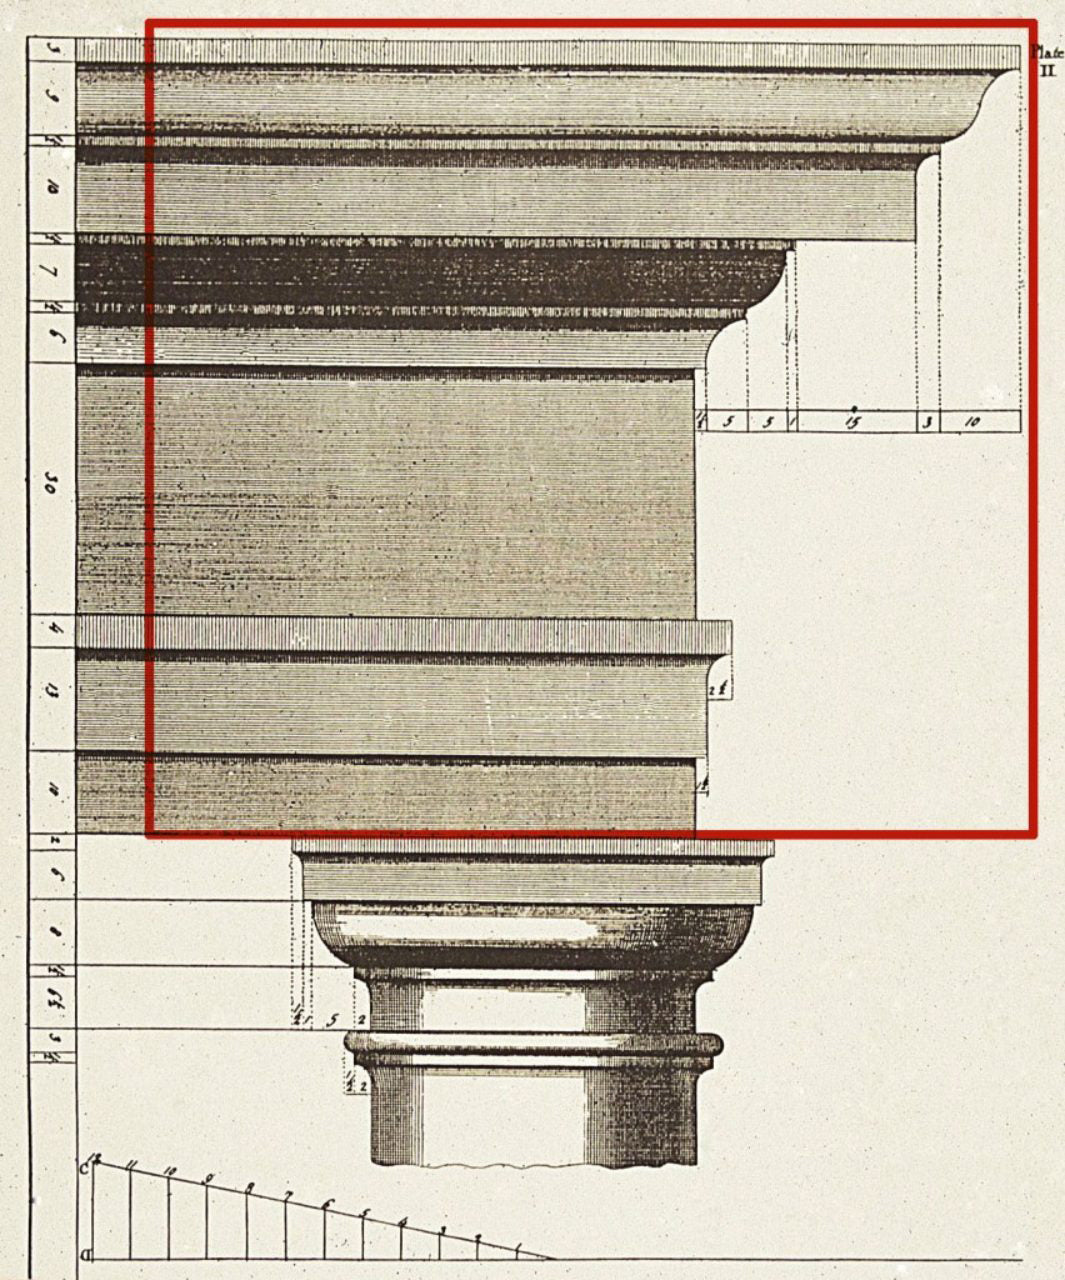 Entablature Illustrated Example - Classical Architectural Glossary by ColumnsDirect.com